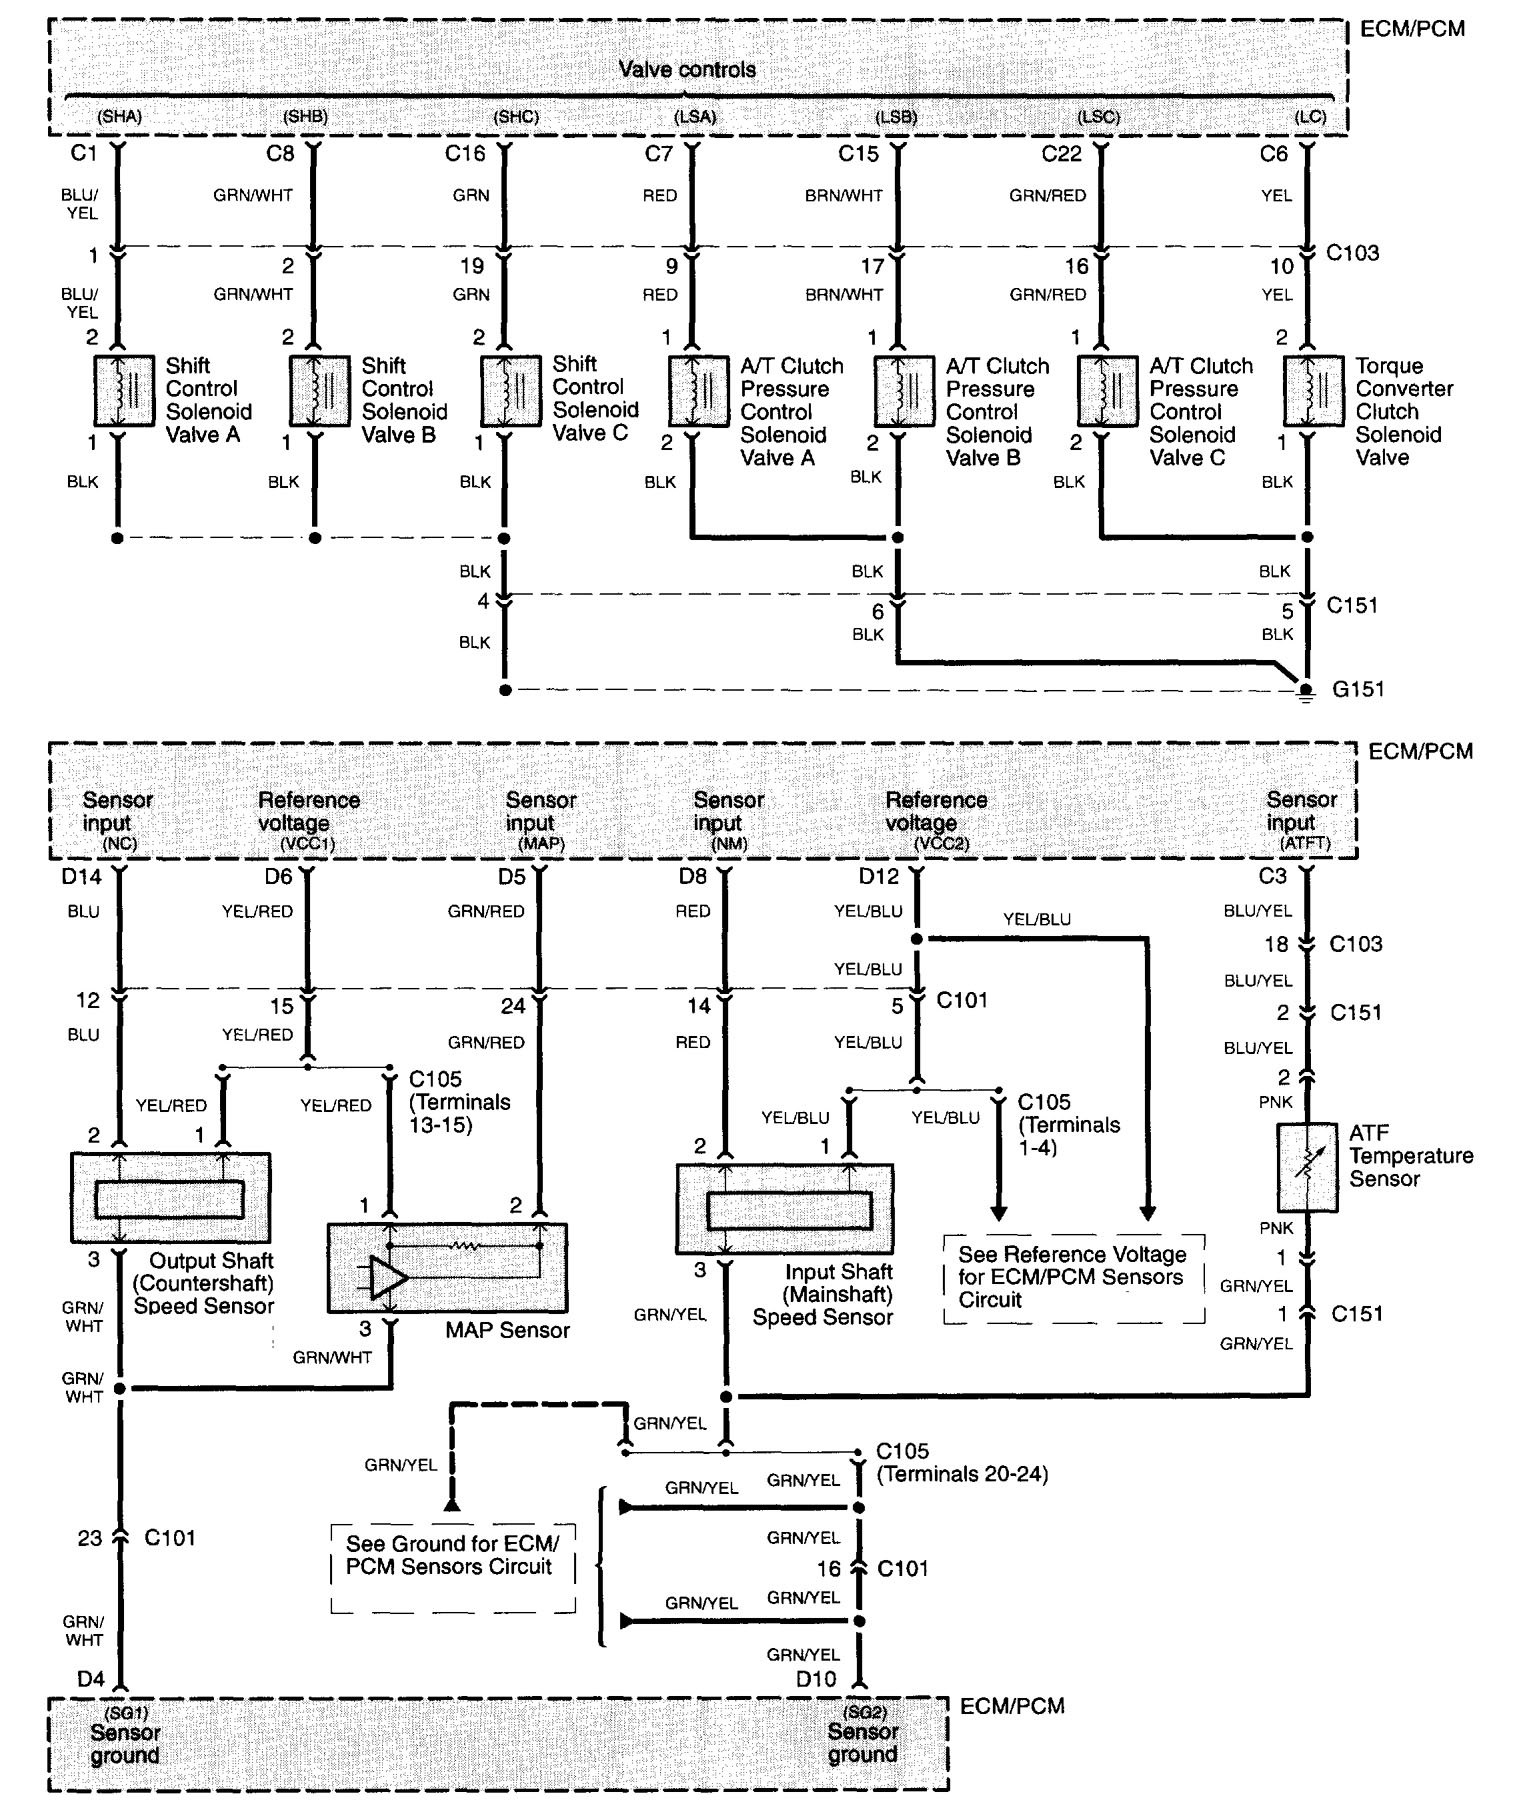 2000 acura integra stereo wiring diagram vw golf mk1 ignition switch tl antenna library